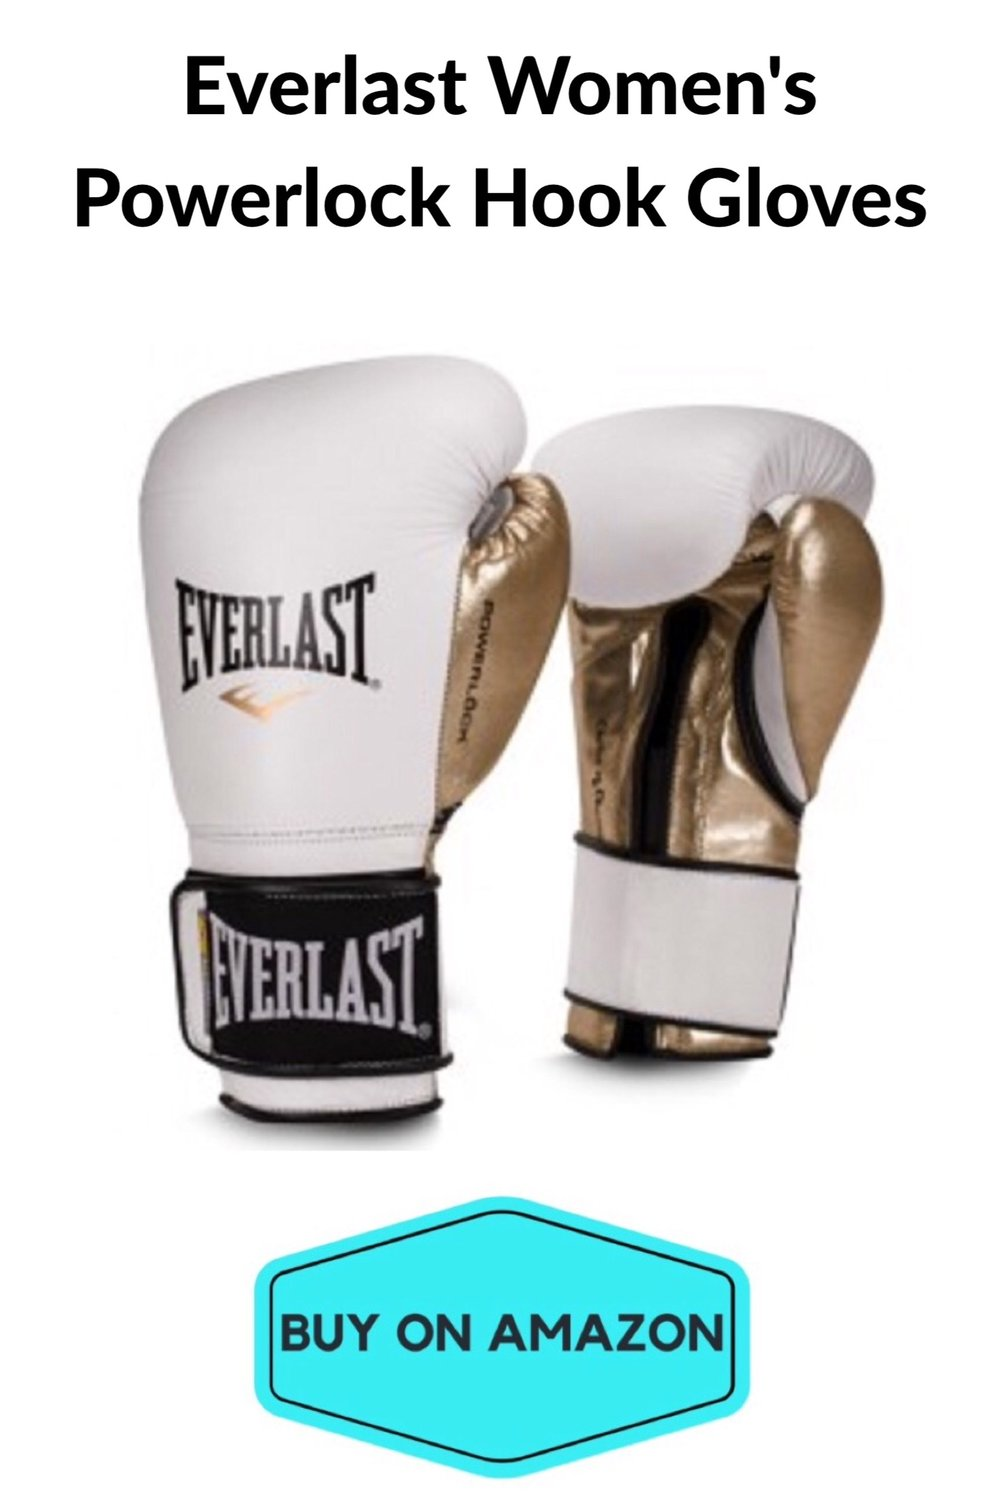 Everlast Women's Powerlock Hook Gloves